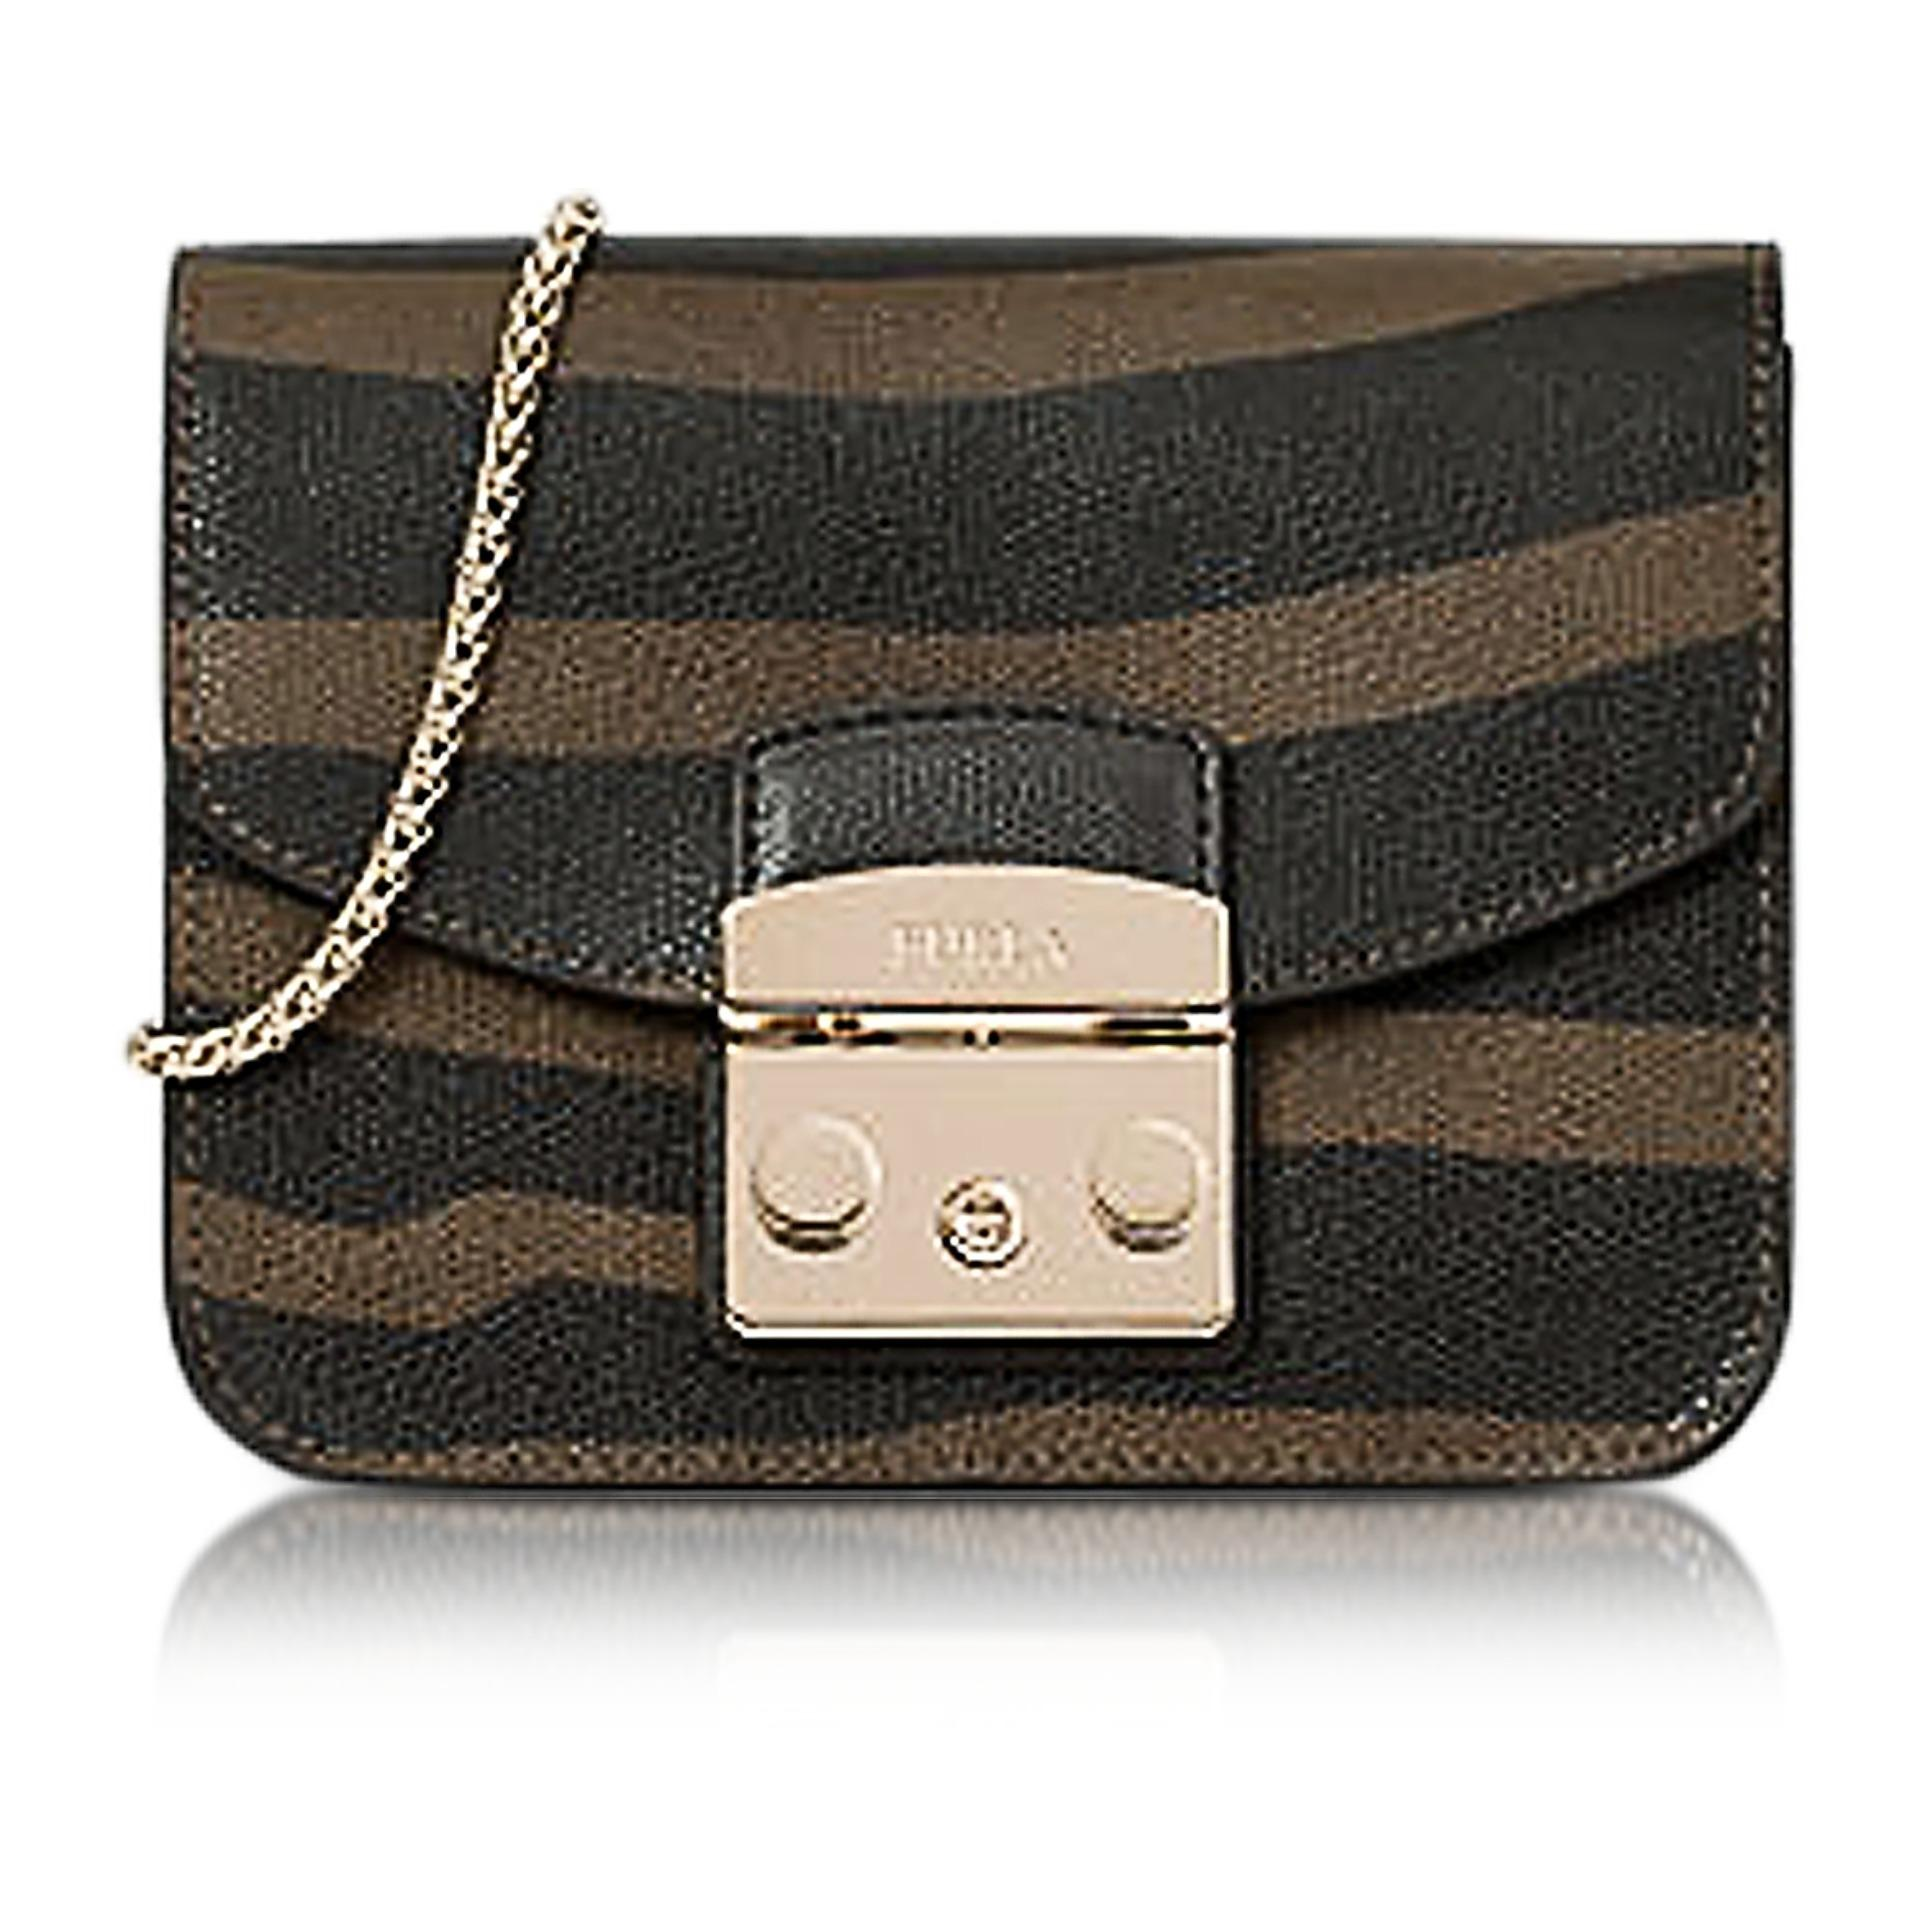 1390ddcd03862 FURLA Glace Zebra Print Leather Metropolis Mini Crossbody Bag